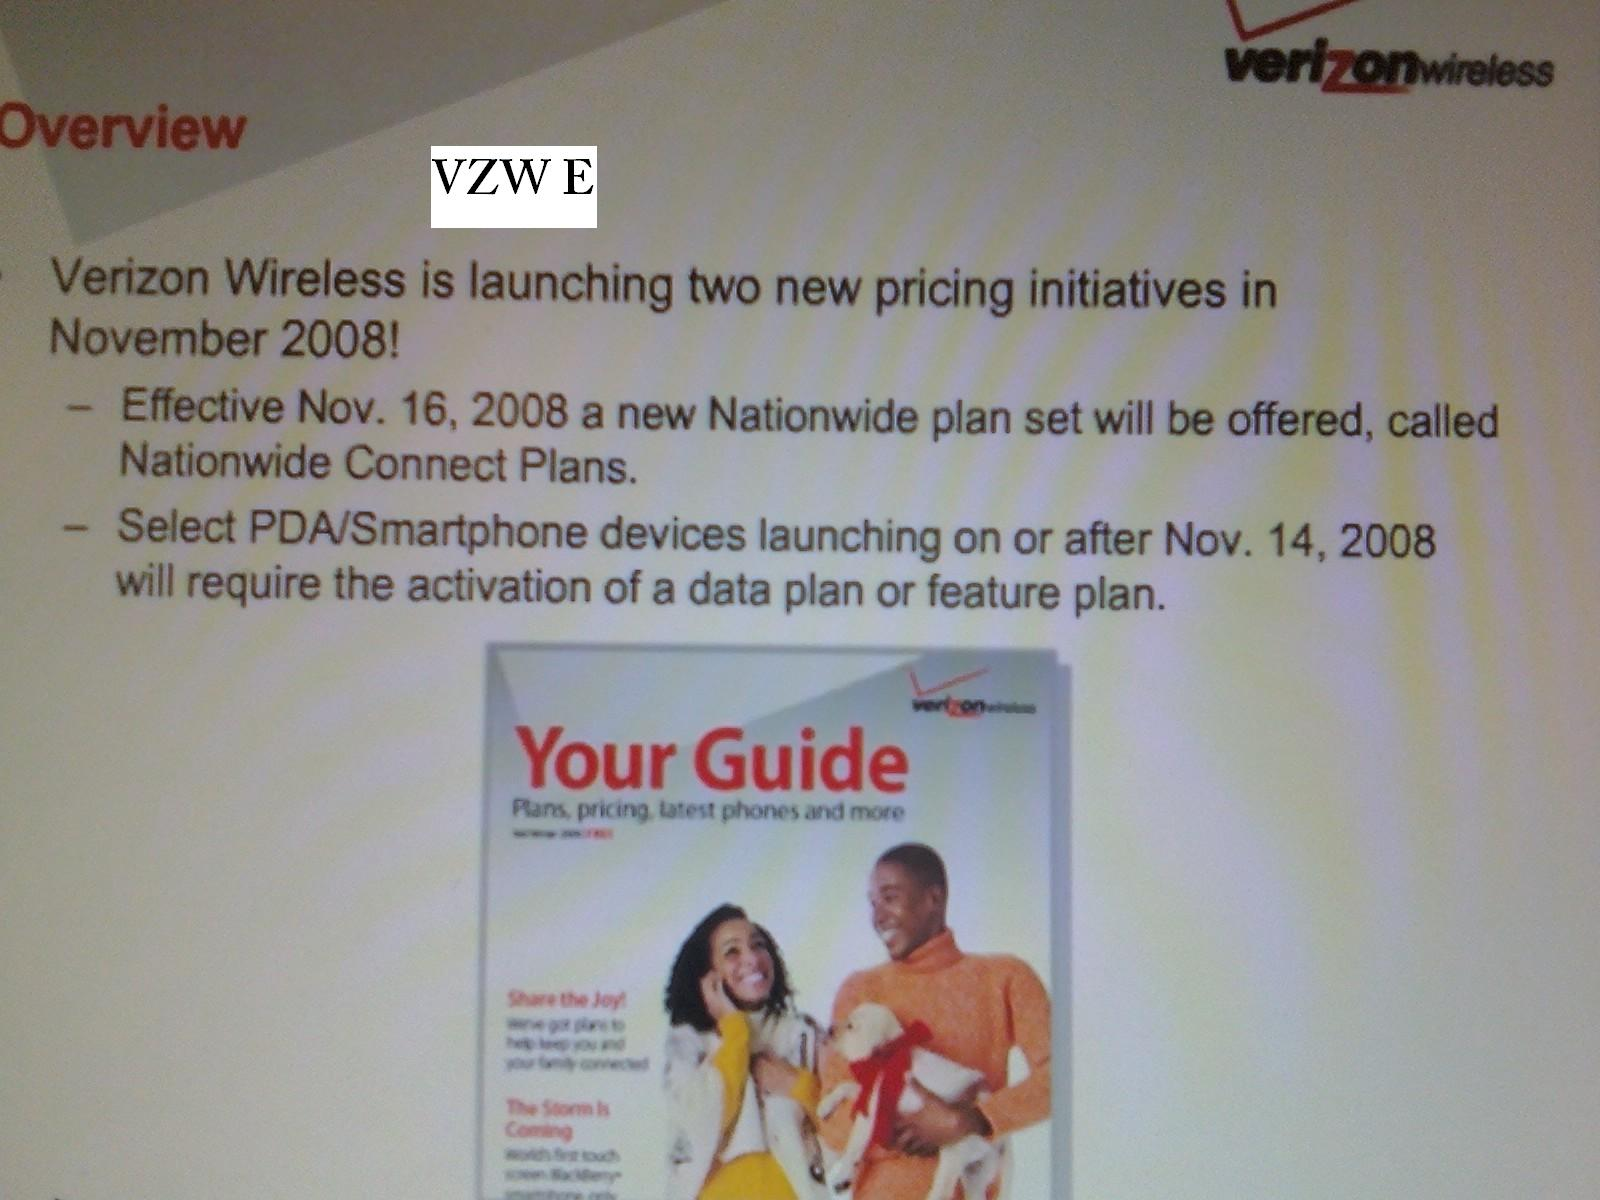 Verizon to Offer New Nationwide Connect Plans